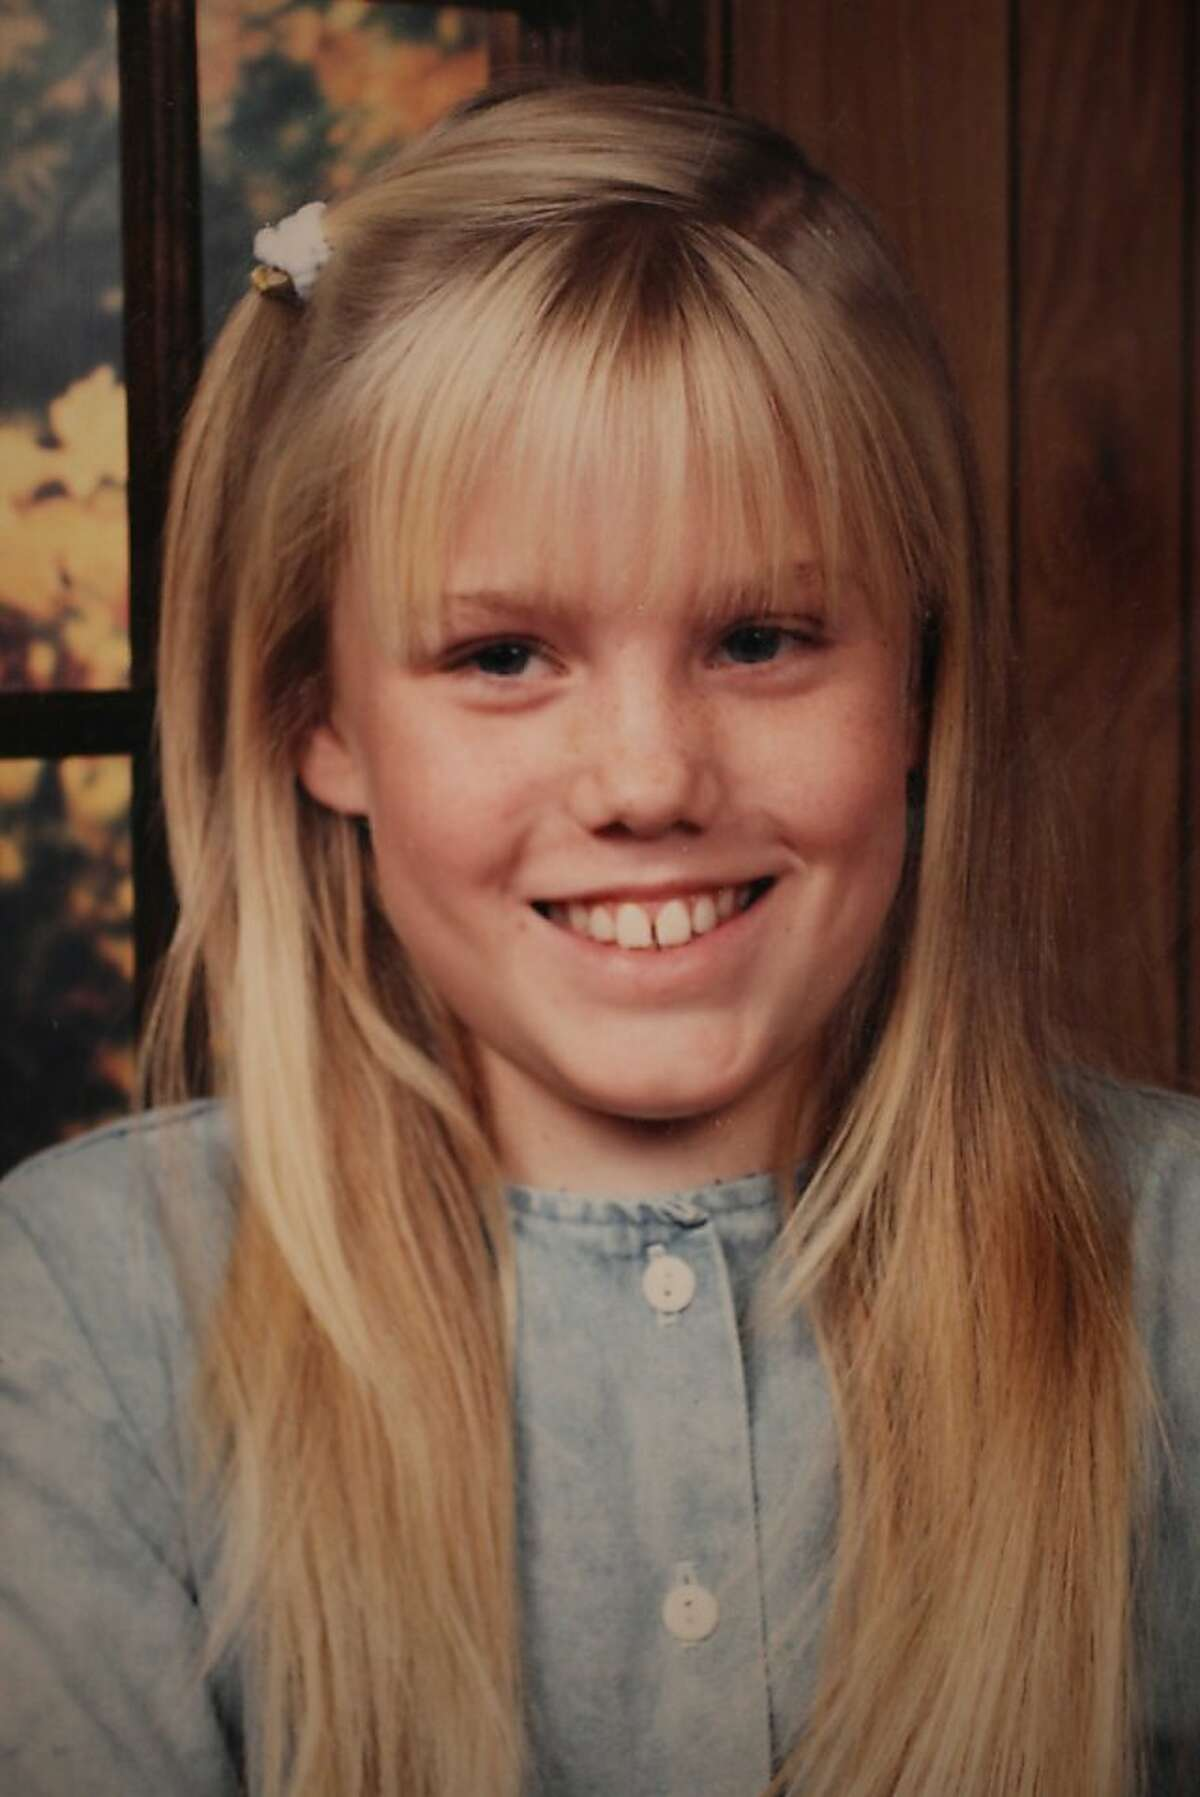 This 2009 family photo provided by Carl Probyn shows his stepdaughter, Jaycee Lee Dugard, who went missing in 1991. Dugard sued the federal government Thursday, Sept. 22, 2011, for failing to monitor the convicted sex offender who kidnapped her and held her captive for 18 years.